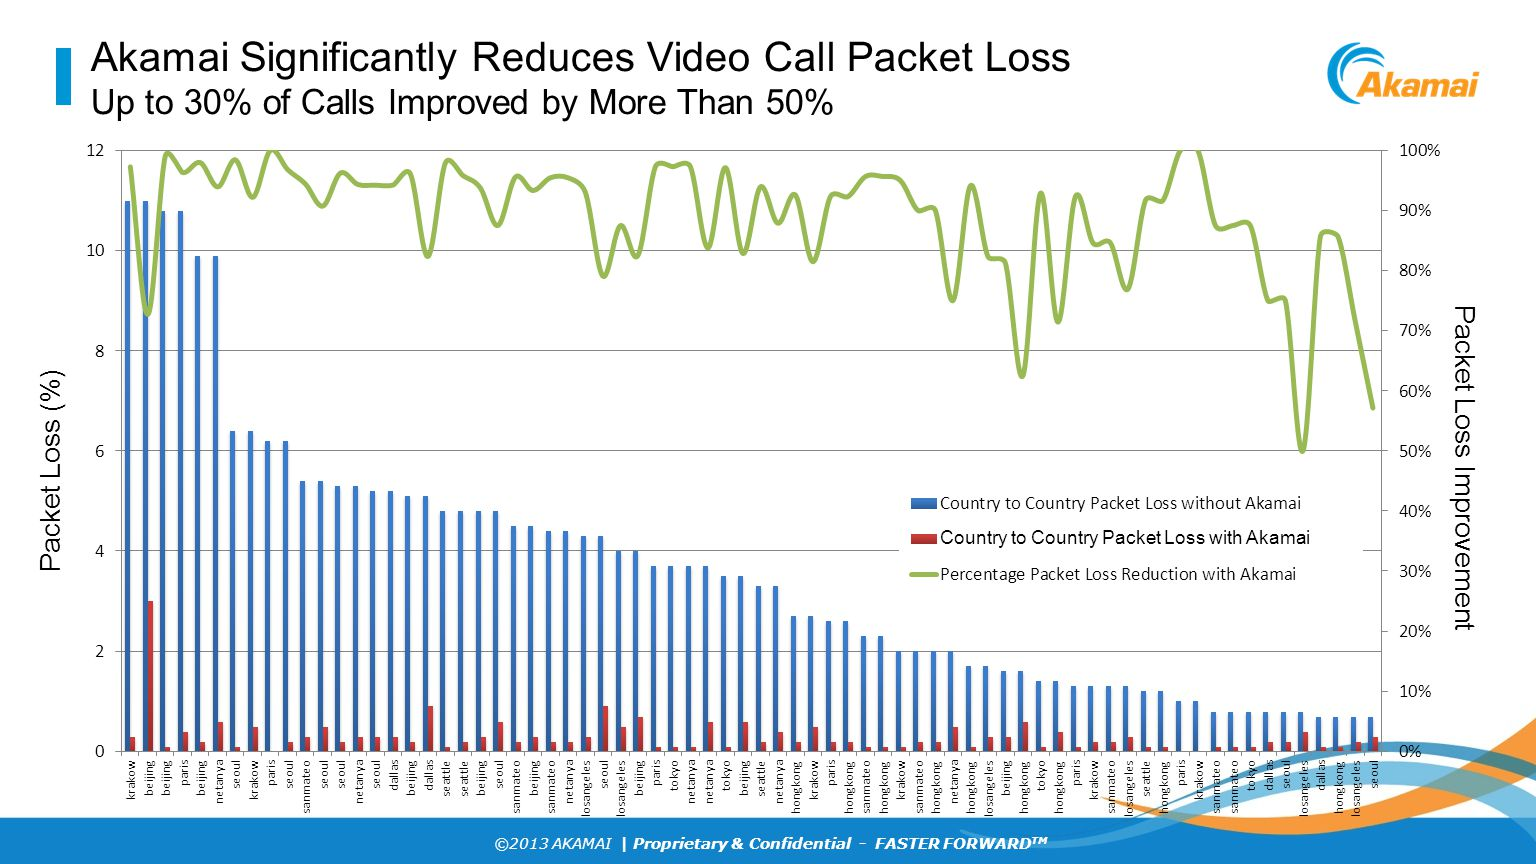 Akamai Significantly Reduces Video Call Packet Loss Up to 30% of Calls Improved by More Than 50%